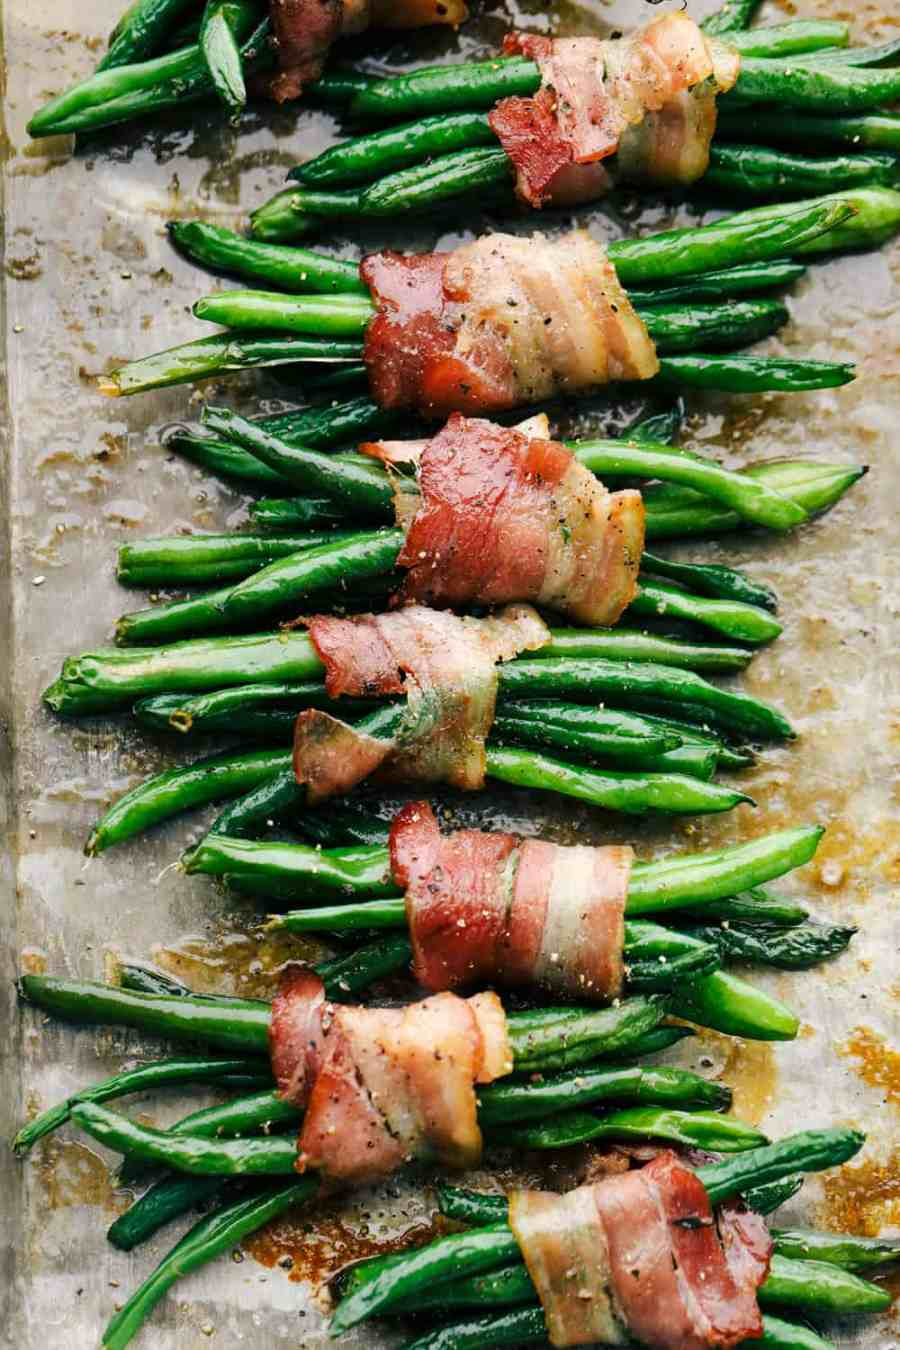 Baked Green Beans wrapped in bacon